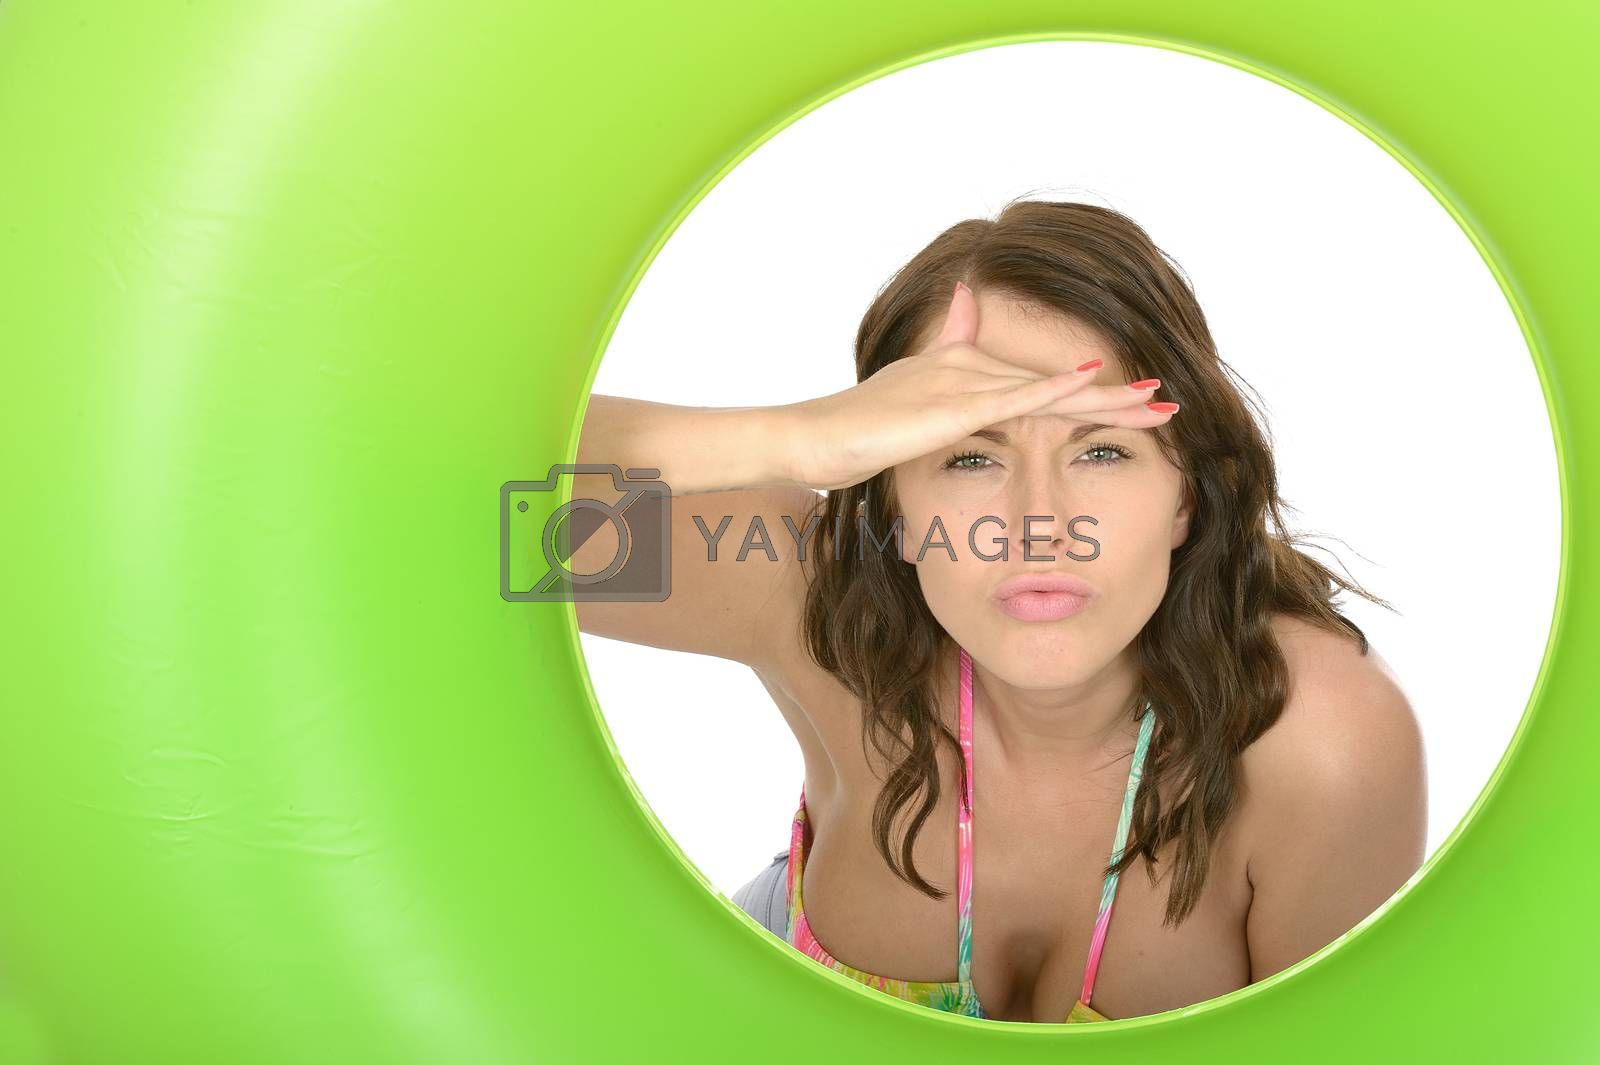 Attractive Young Woman Peering as if Spying Through a Green Rubber Ring